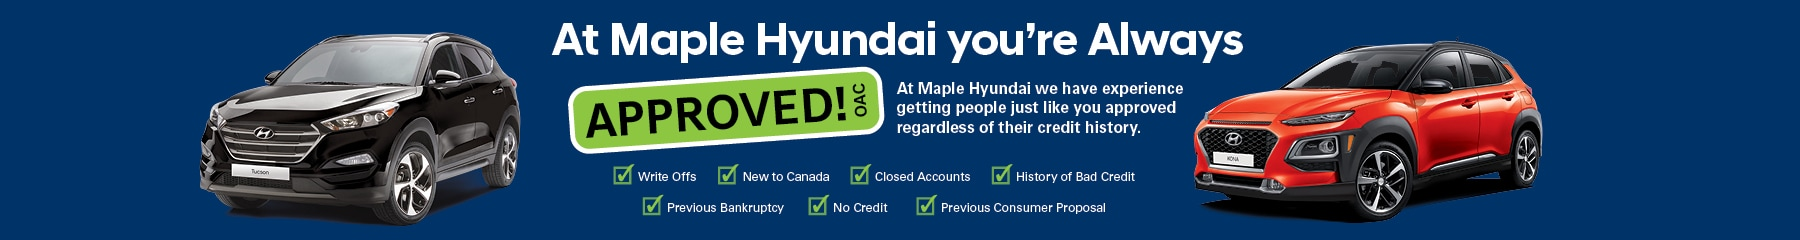 Get Pre-Qualified for a Vehicle - Maple Hyundai